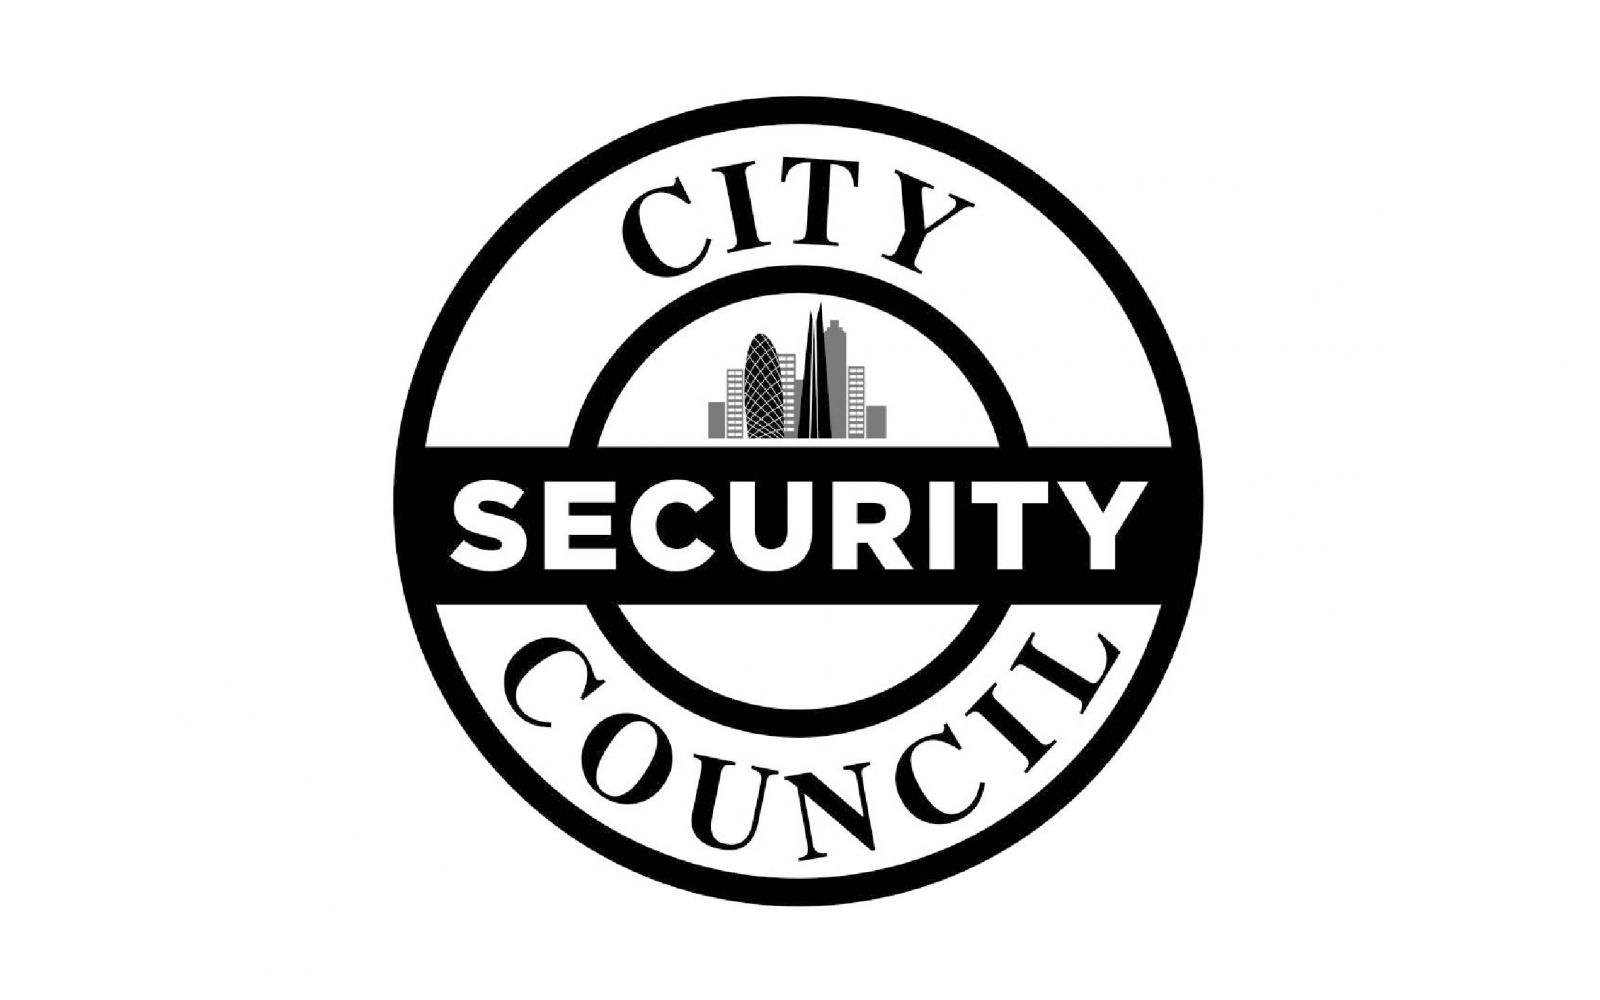 ICTS UK & Ireland: founding member of the City Security Council